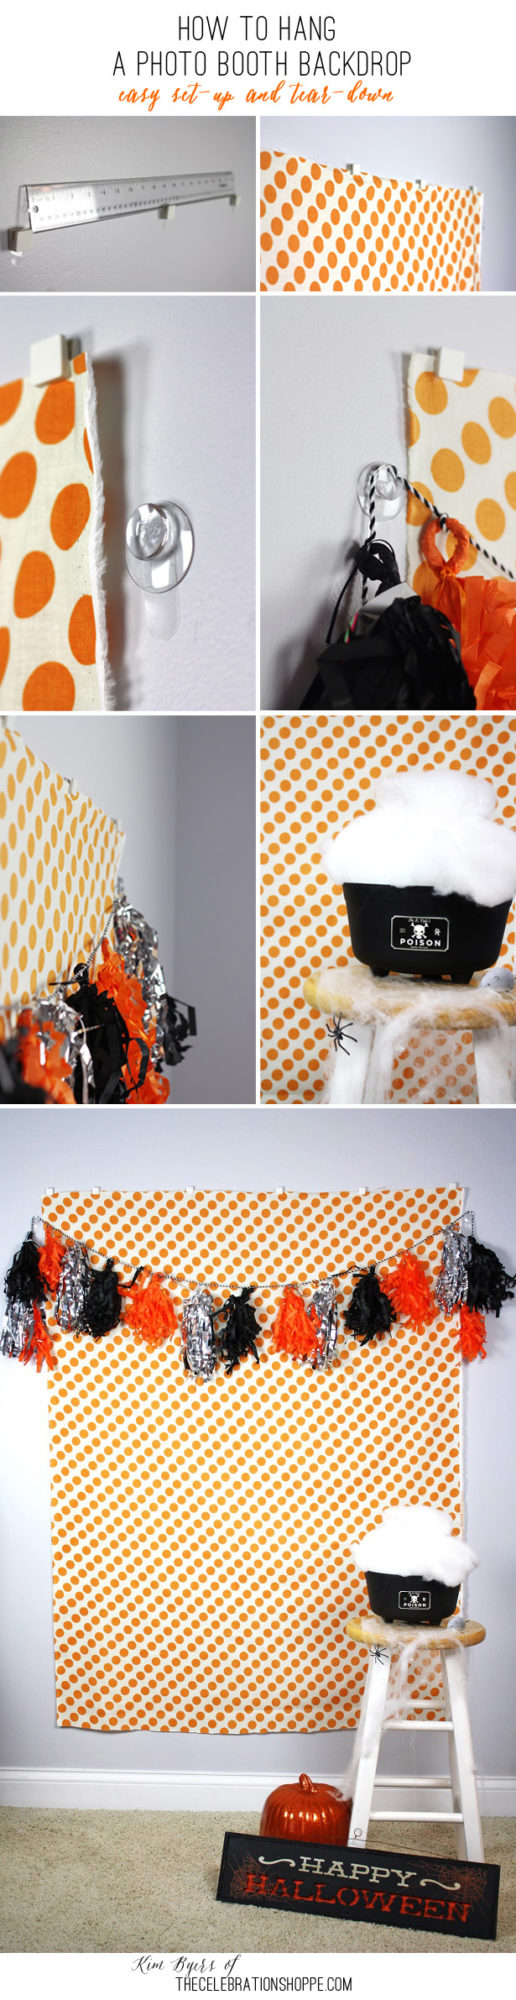 How To Set Up A Photo Booth Backdrop | Kim Byers, TheCelebrationShoppe.com